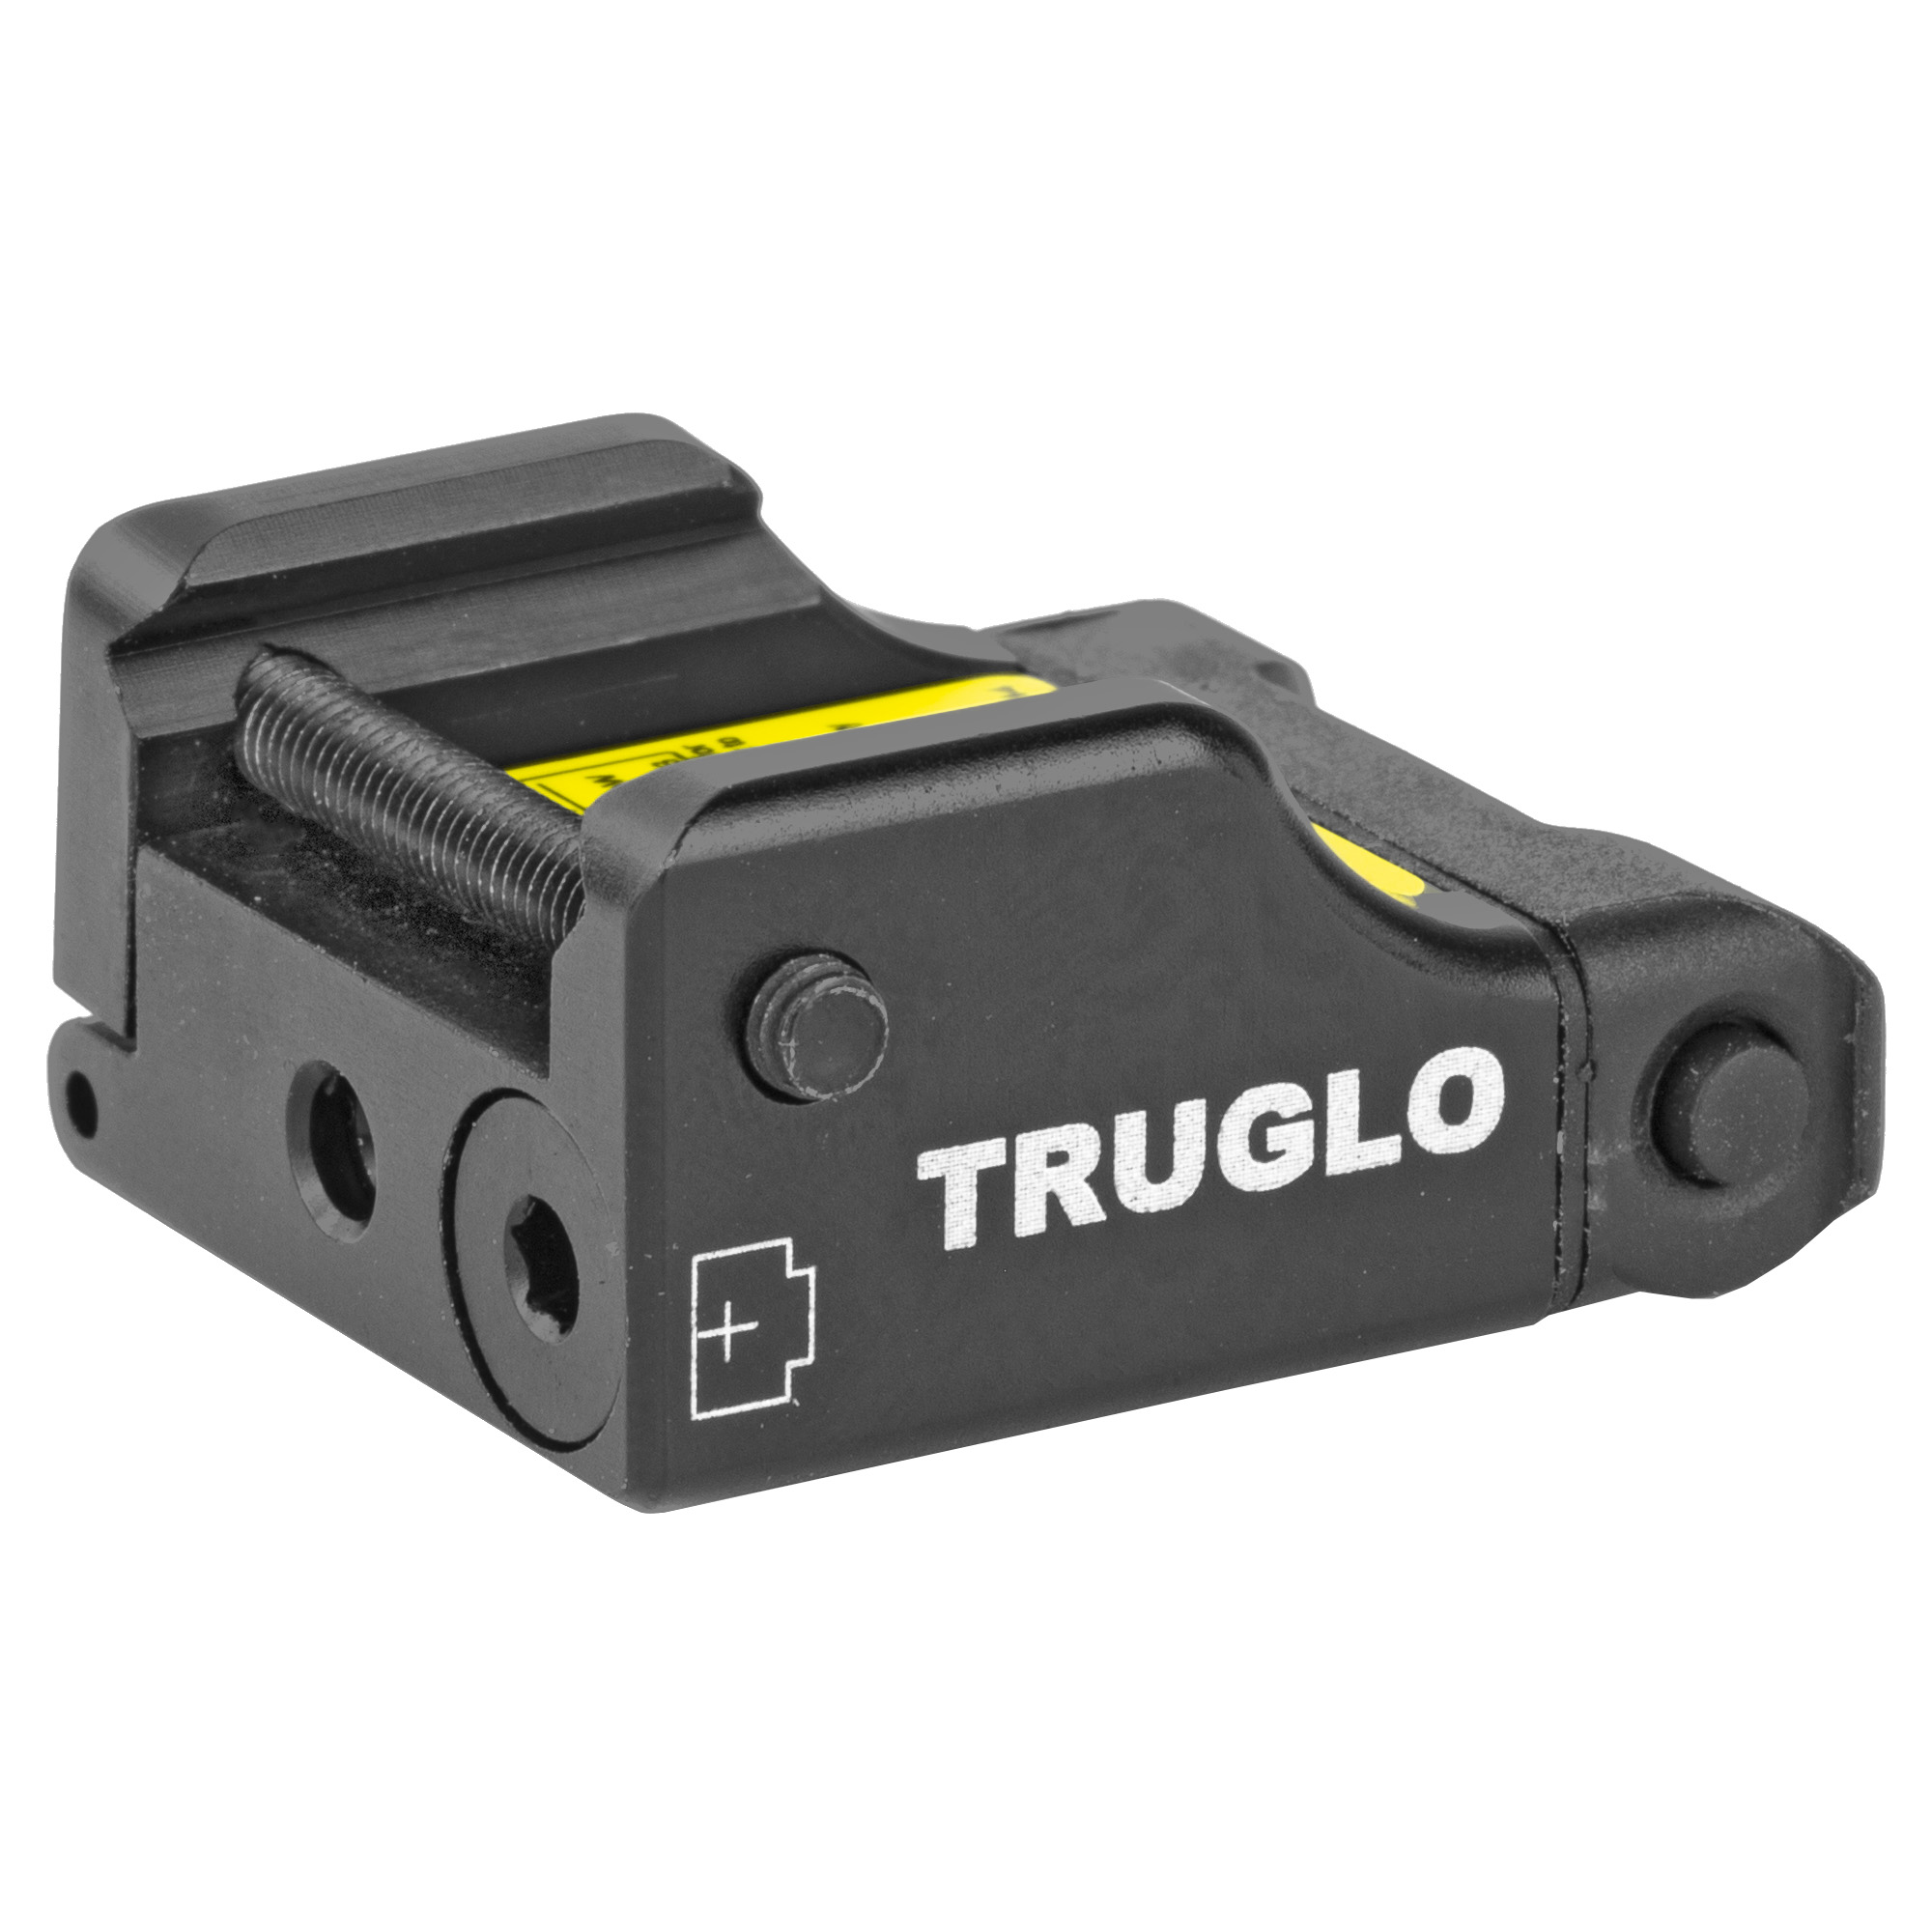 """The Truglo Micro Tac laser is a next generation"""" high-efficiency superconductor laser diode. It features a powerful 650nm red laser and easy ambidextrous push-button activation for left and right handed users."""